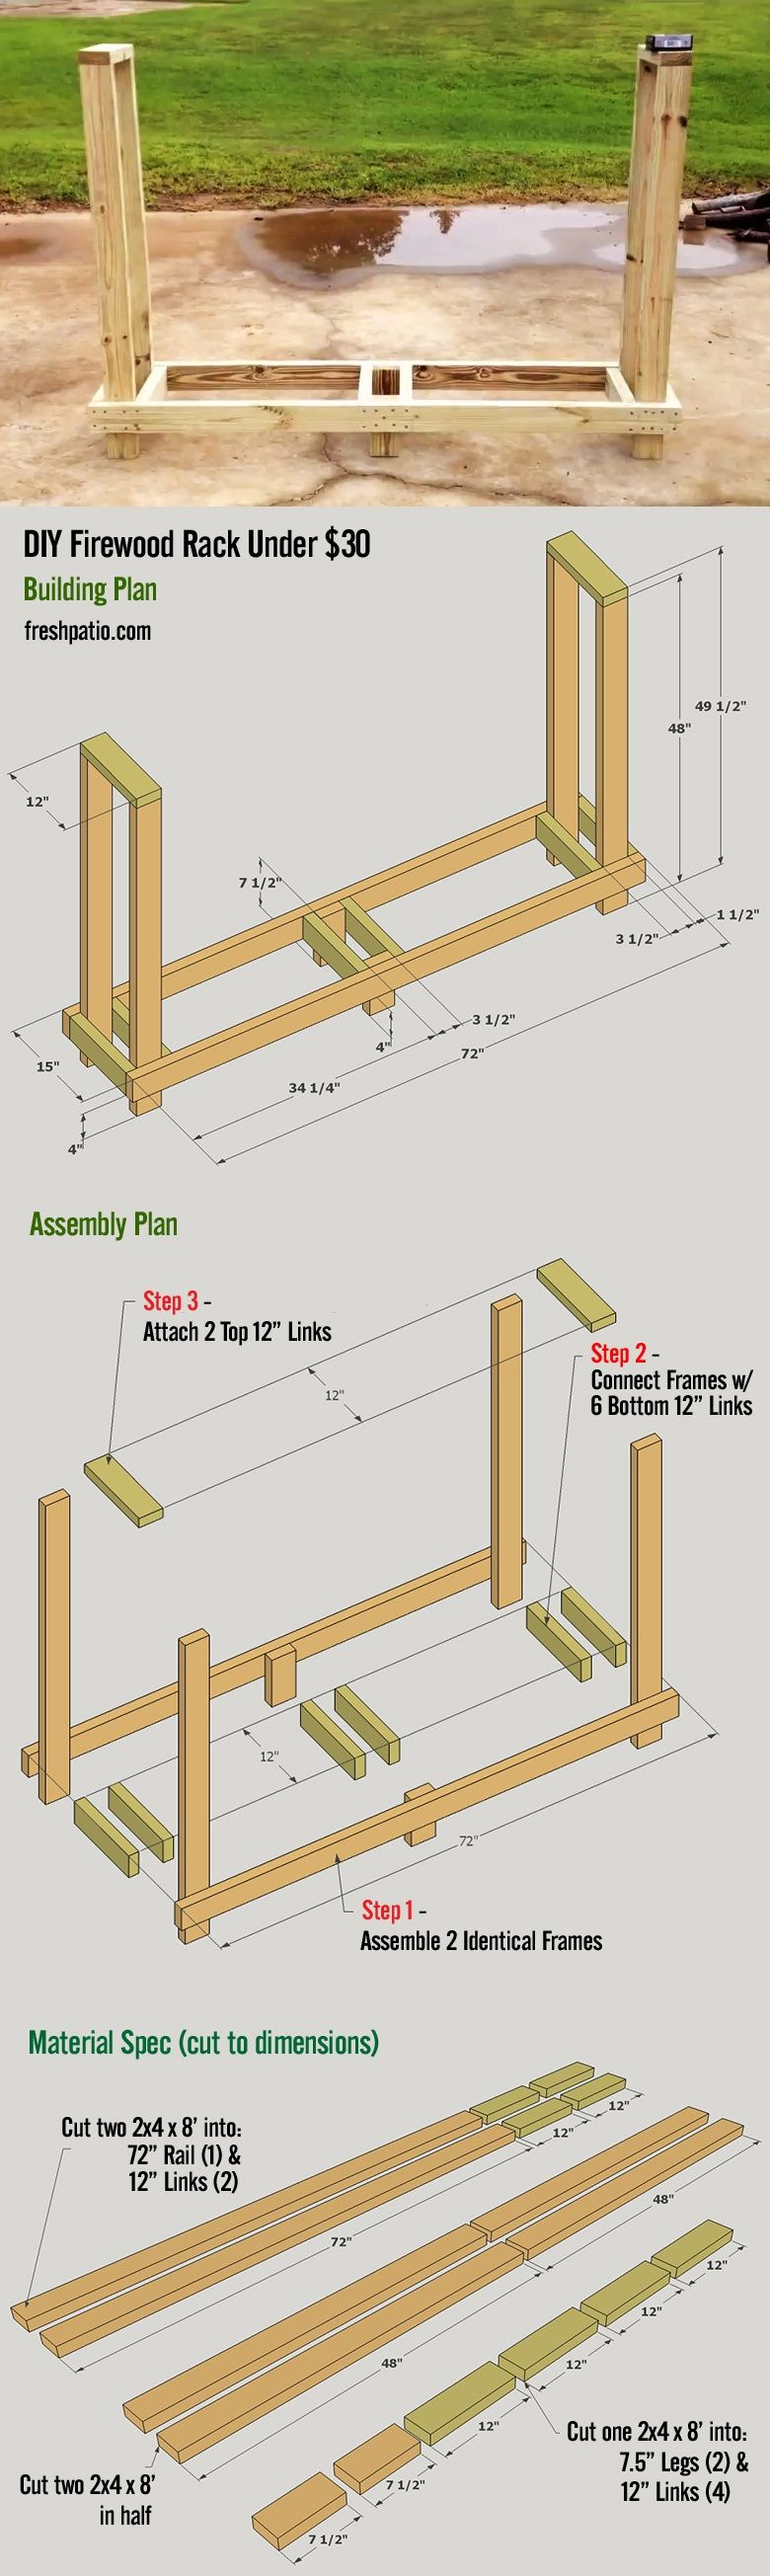 Best Deals On Woodworking Tools | Firewood rack plans, 30th and Woods